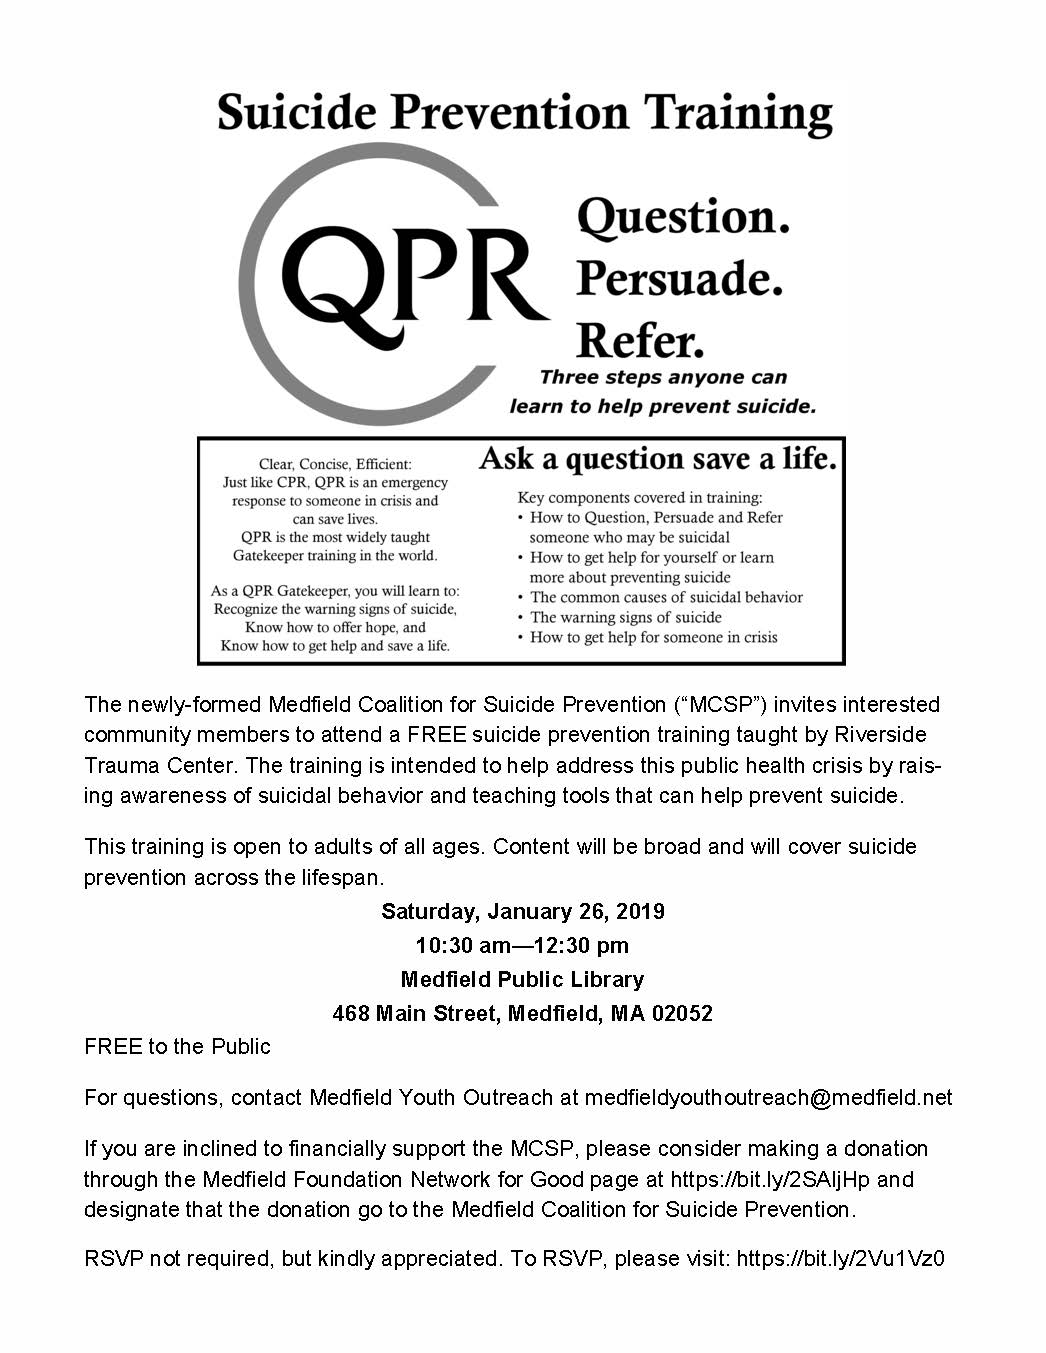 "The newly-formed Medfield Coalition for Suicide Prevention (""MCSP"") invites interested community members to attend a FREE suicide prevention training taught by Riverside Trauma Center. The training is intended to help address this public health crisis by rais-ing awareness of suicidal behavior and teaching tools that can help prevent suicide. This training is open to adults of all ages. Content will be broad and will cover suicide prevention across the lifespan. Saturday, January 26, 2019 10:30 am—12:30 pm Medfield Public Library 468 Main Street, Medfield, MA 02052 FREE to the Public For questions, contact Medfield Youth Outreach at medfieldyouthoutreach@medfield.net If you are inclined to financially support the MCSP, please consider making a donation through the Medfield Foundation Network for Good page at https://bit.ly/2SAIjHp and designate that the donation go to the Medfield Coalition for Suicide Prevention. RSVP not required, but kindly appreciated. To RSVP, please visit: https://bit.ly/2Vu1Vz0"